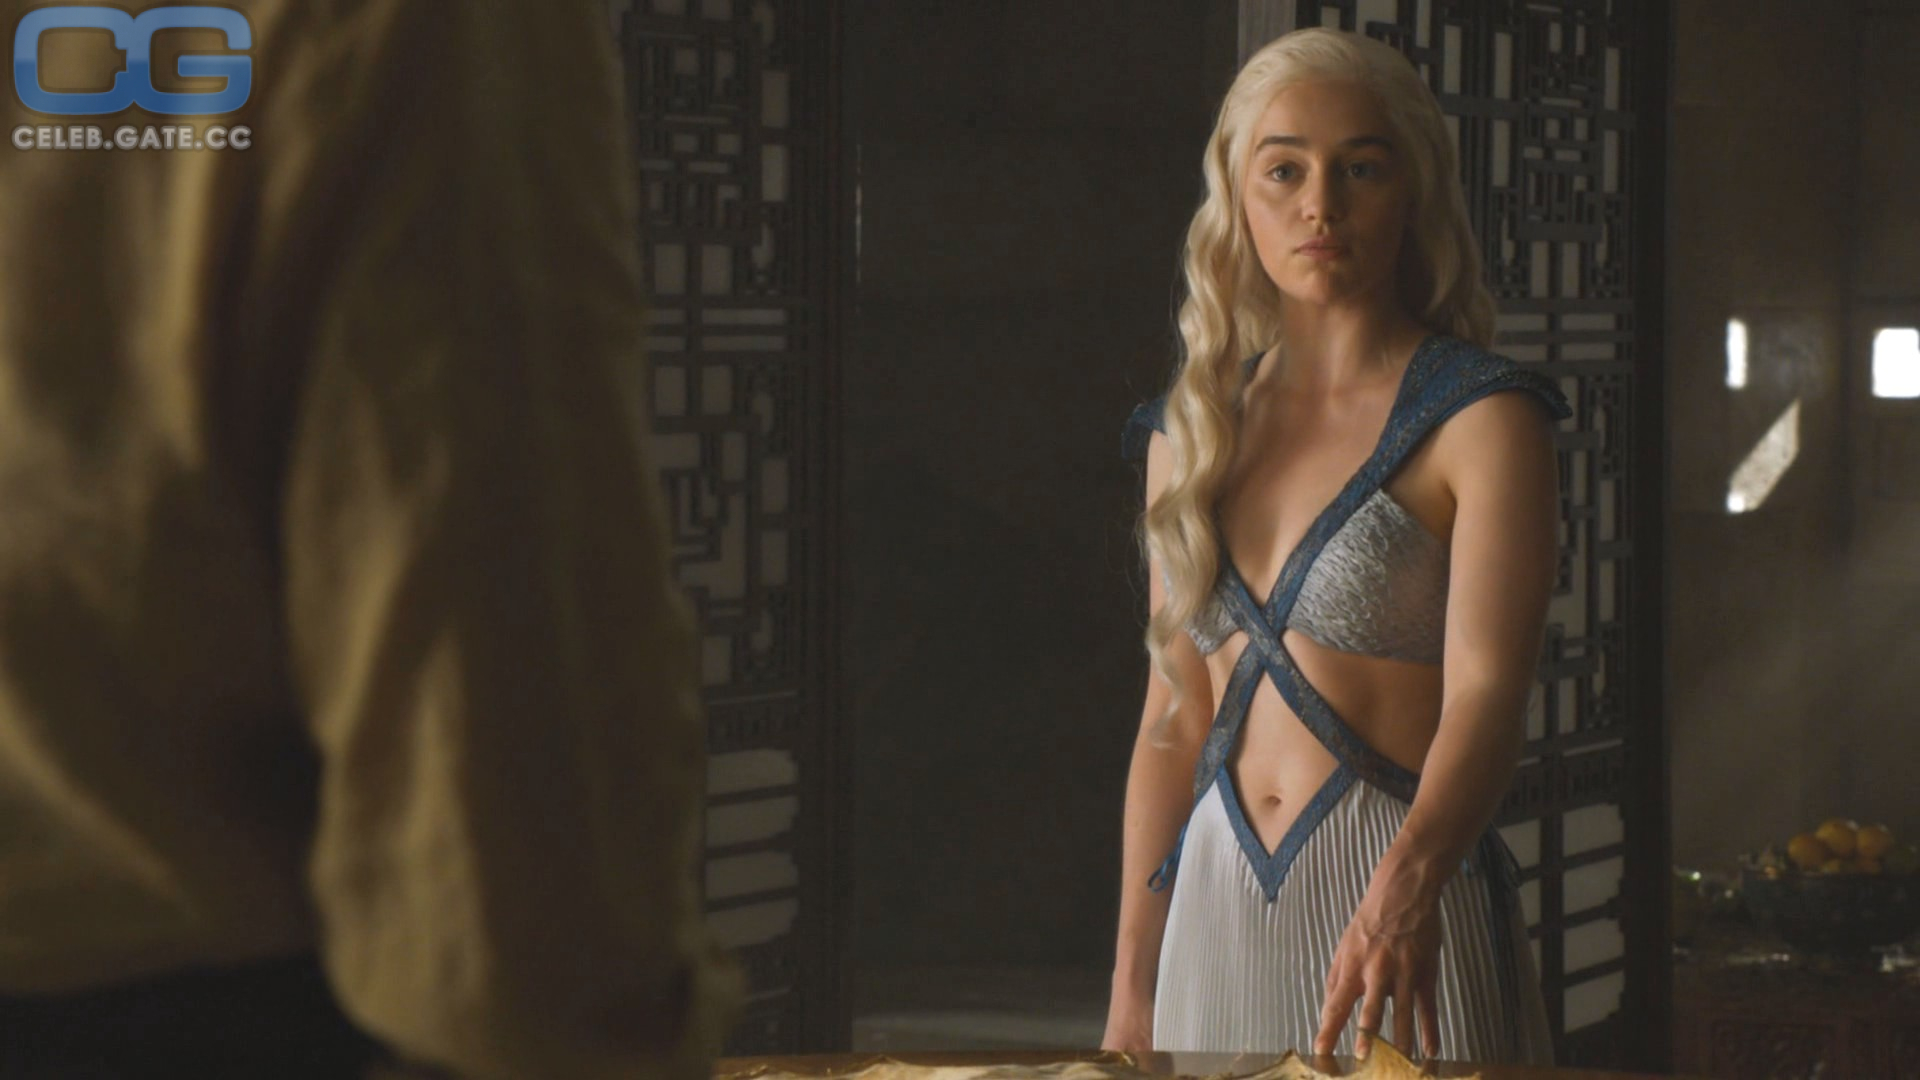 emilia clarke fappening banned sex tapes